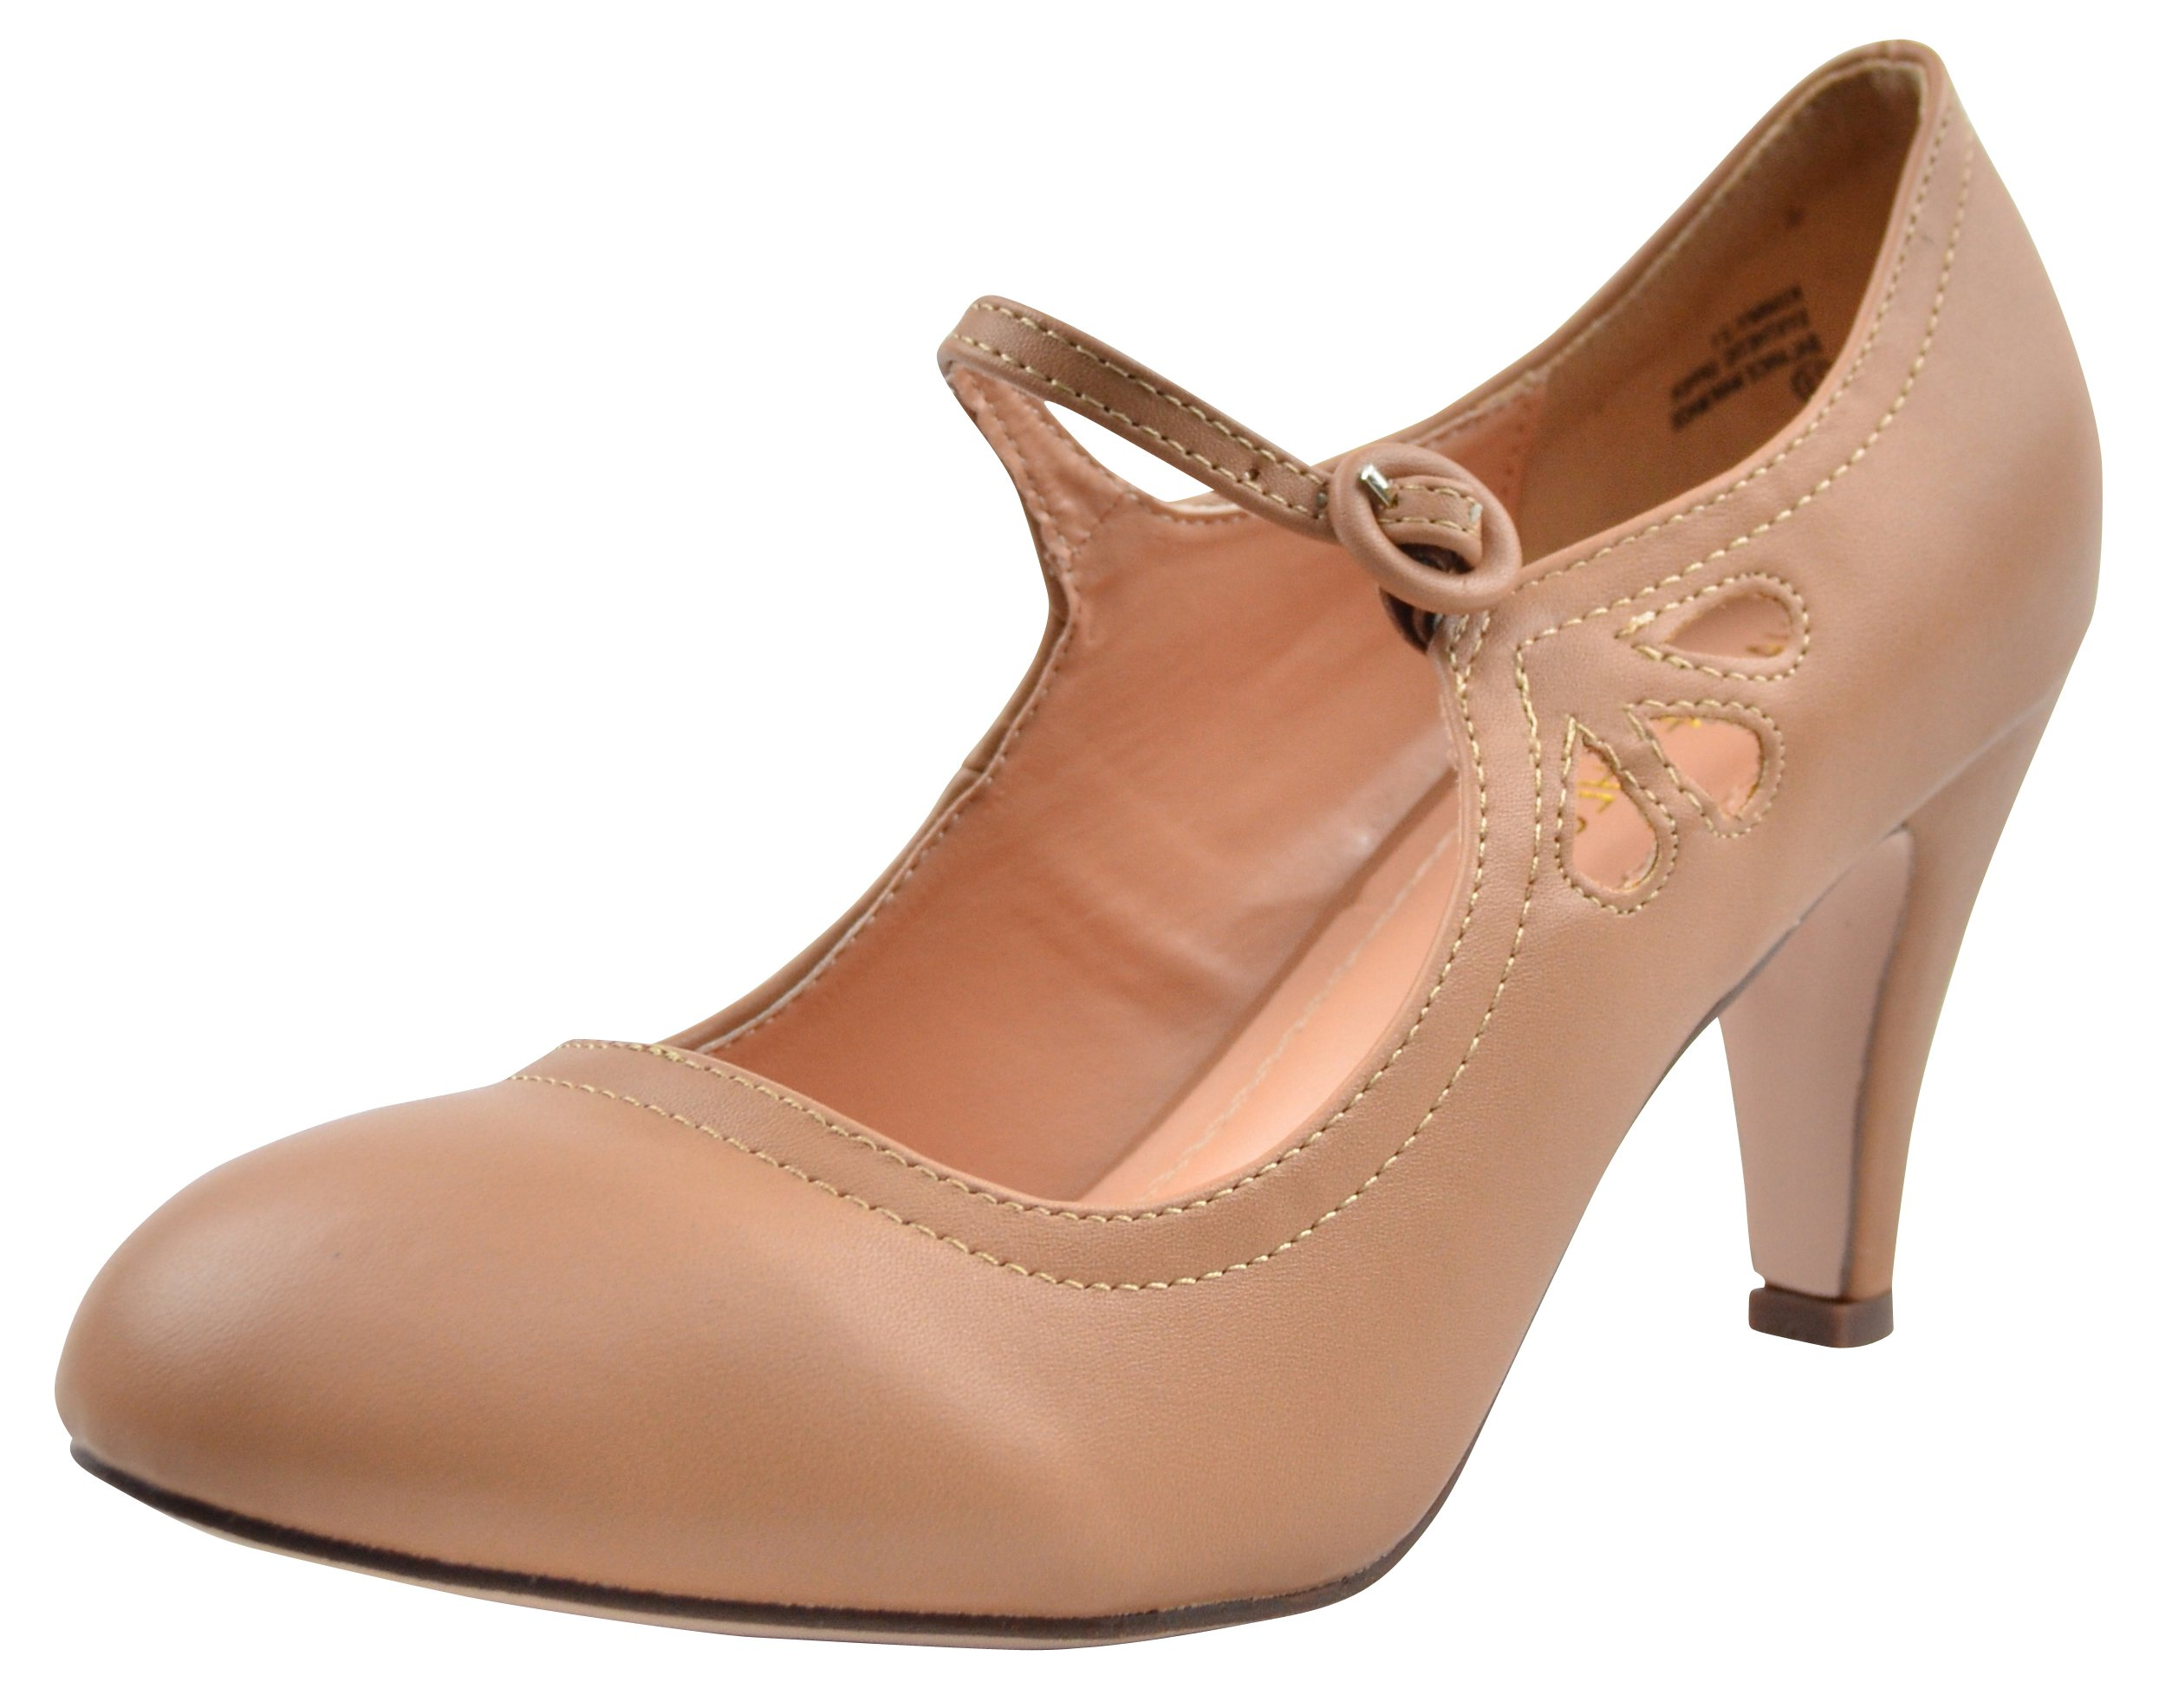 Chase and Chloe Kimmy-21 Mary Jane Teardrop Cutout T-Strap Pump Heel (5.5 B(M) US, Taupe PU) by Chase & Chloe